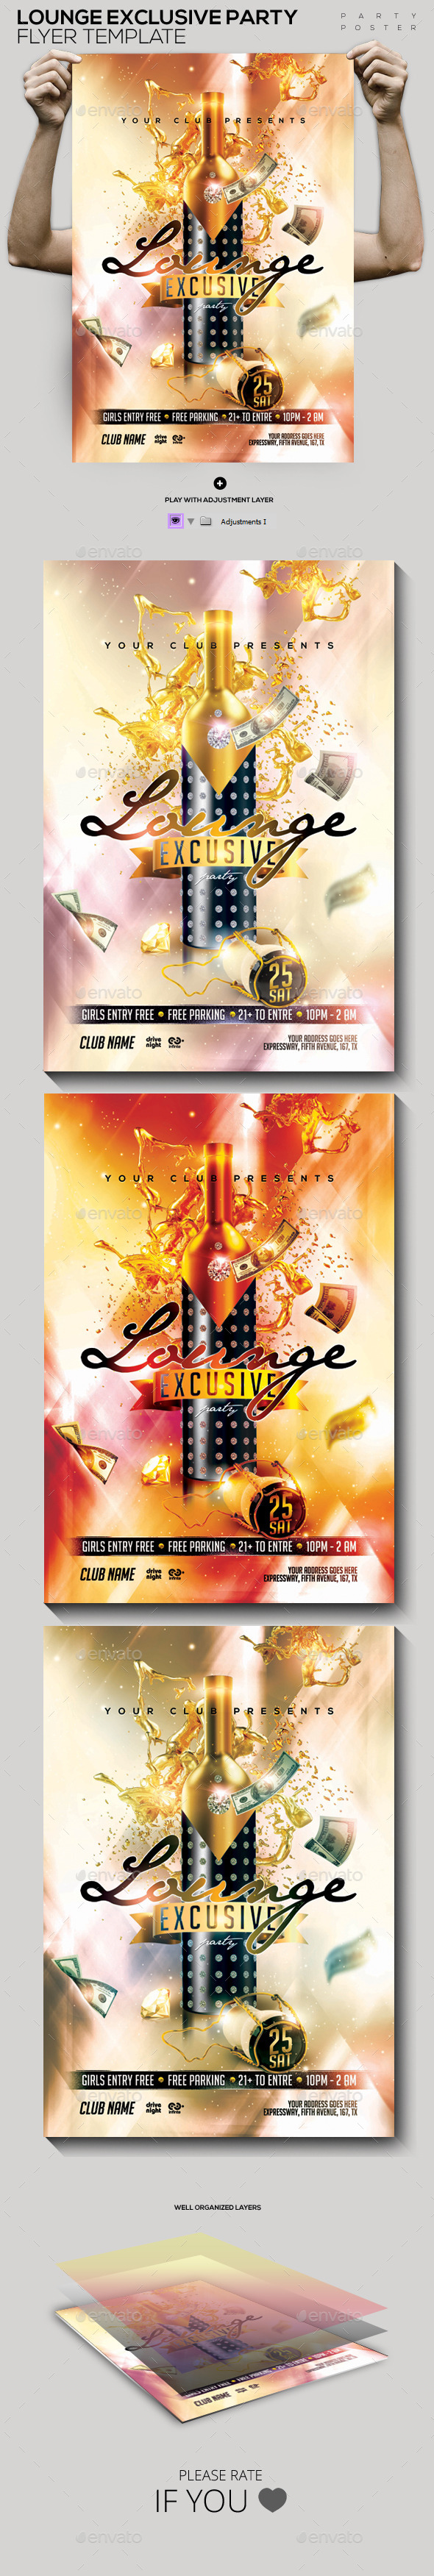 Lounge Exclusive Champagne Template Flyer/Poster - Clubs & Parties Events